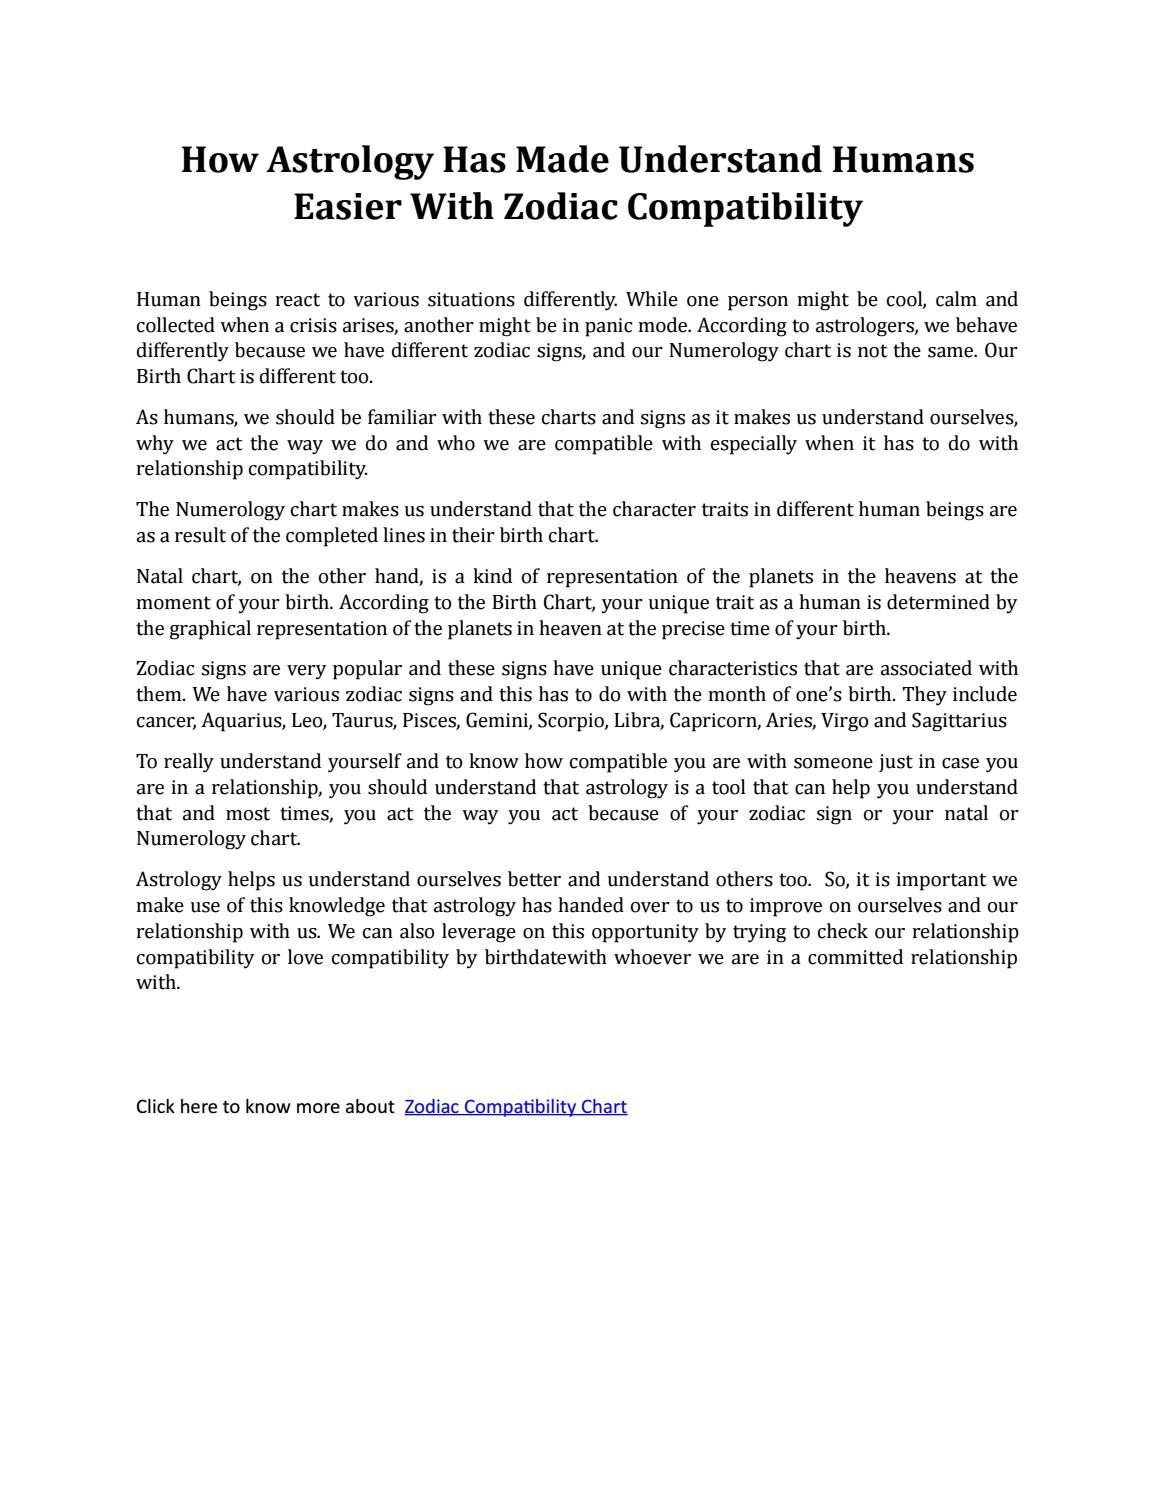 Same zodiac sign compatibility  The 2019 Zodiac Signs